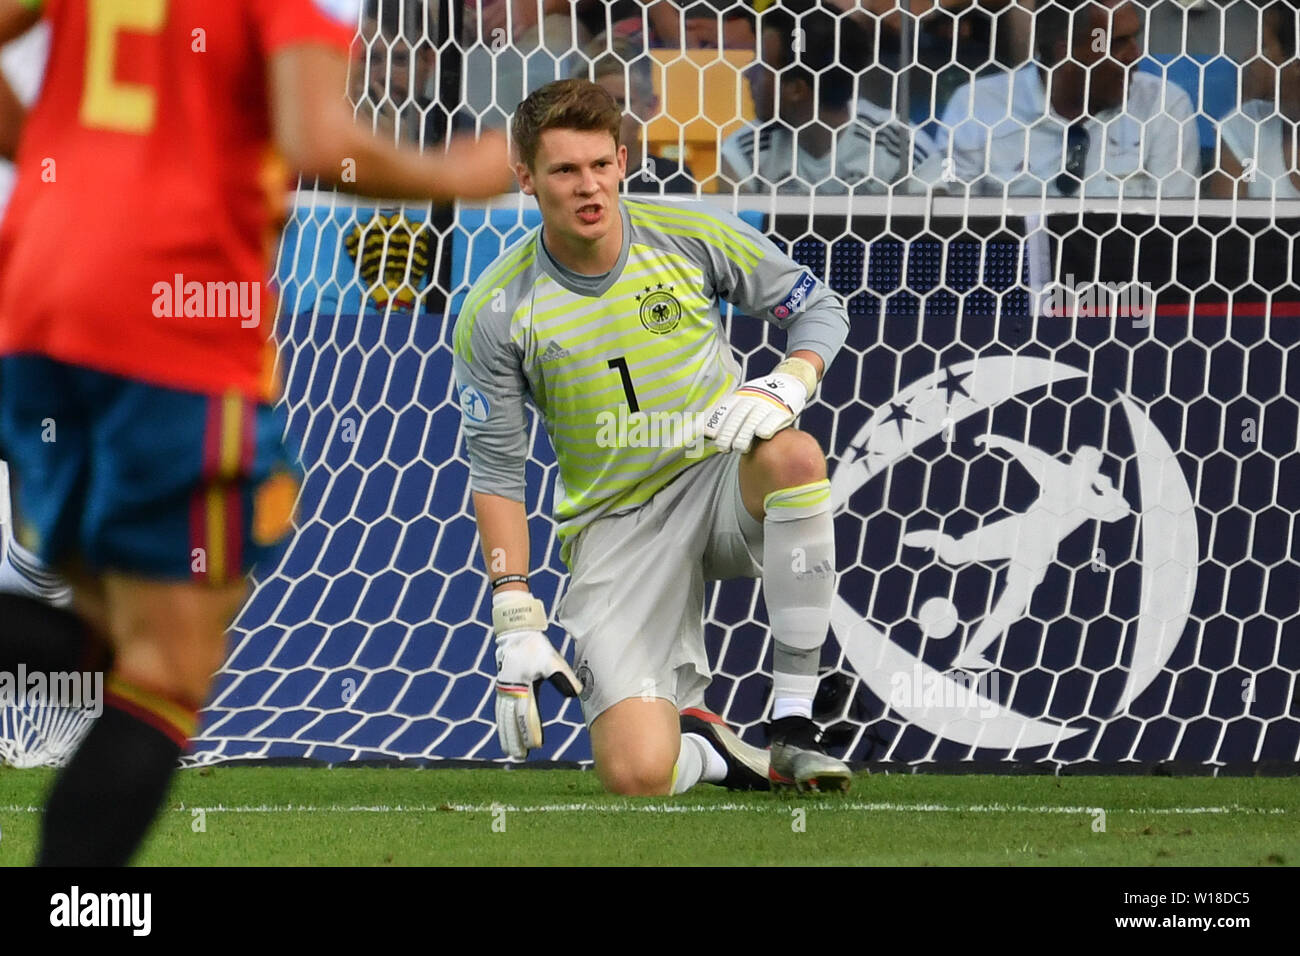 Udine, Italien. 30th June, 2019. Alexander NUEBEL, goalie (GER) at the ground after goal 1-0, disappointment, frustrated, disappointed, frustratedriert, dejected, .action. Spain (ESP) - Germany (GER) 2-1, at 30.06.2019 Stadio Friuli Udine. Football U-21, FINALE UEFA Under21 European Championship in Italy/SanMarino from 16.-30.06.2019. | Usage worldwide Credit: dpa/Alamy Live News - Stock Image